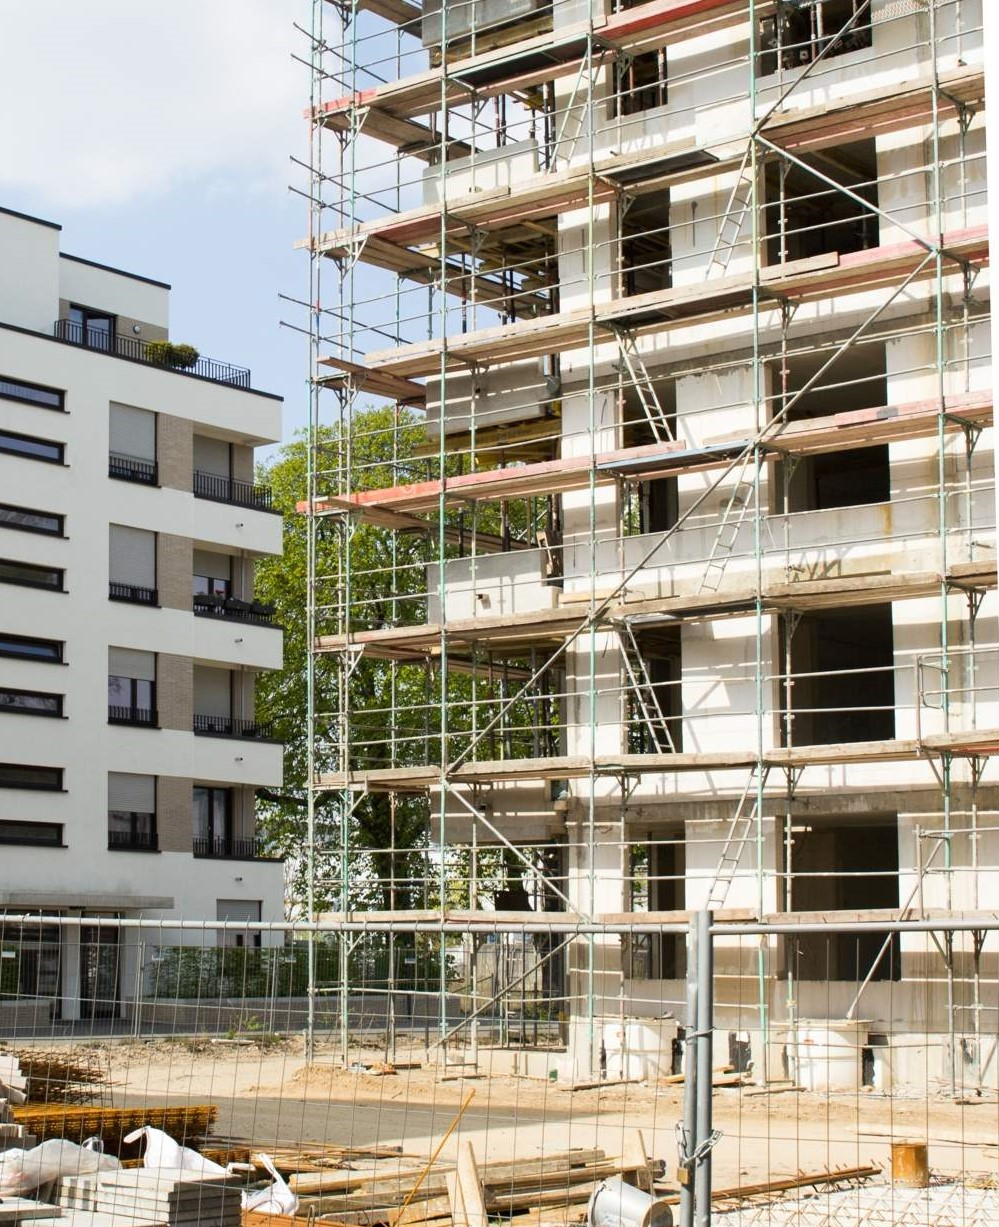 Housing associations assume stable new construction in 2020